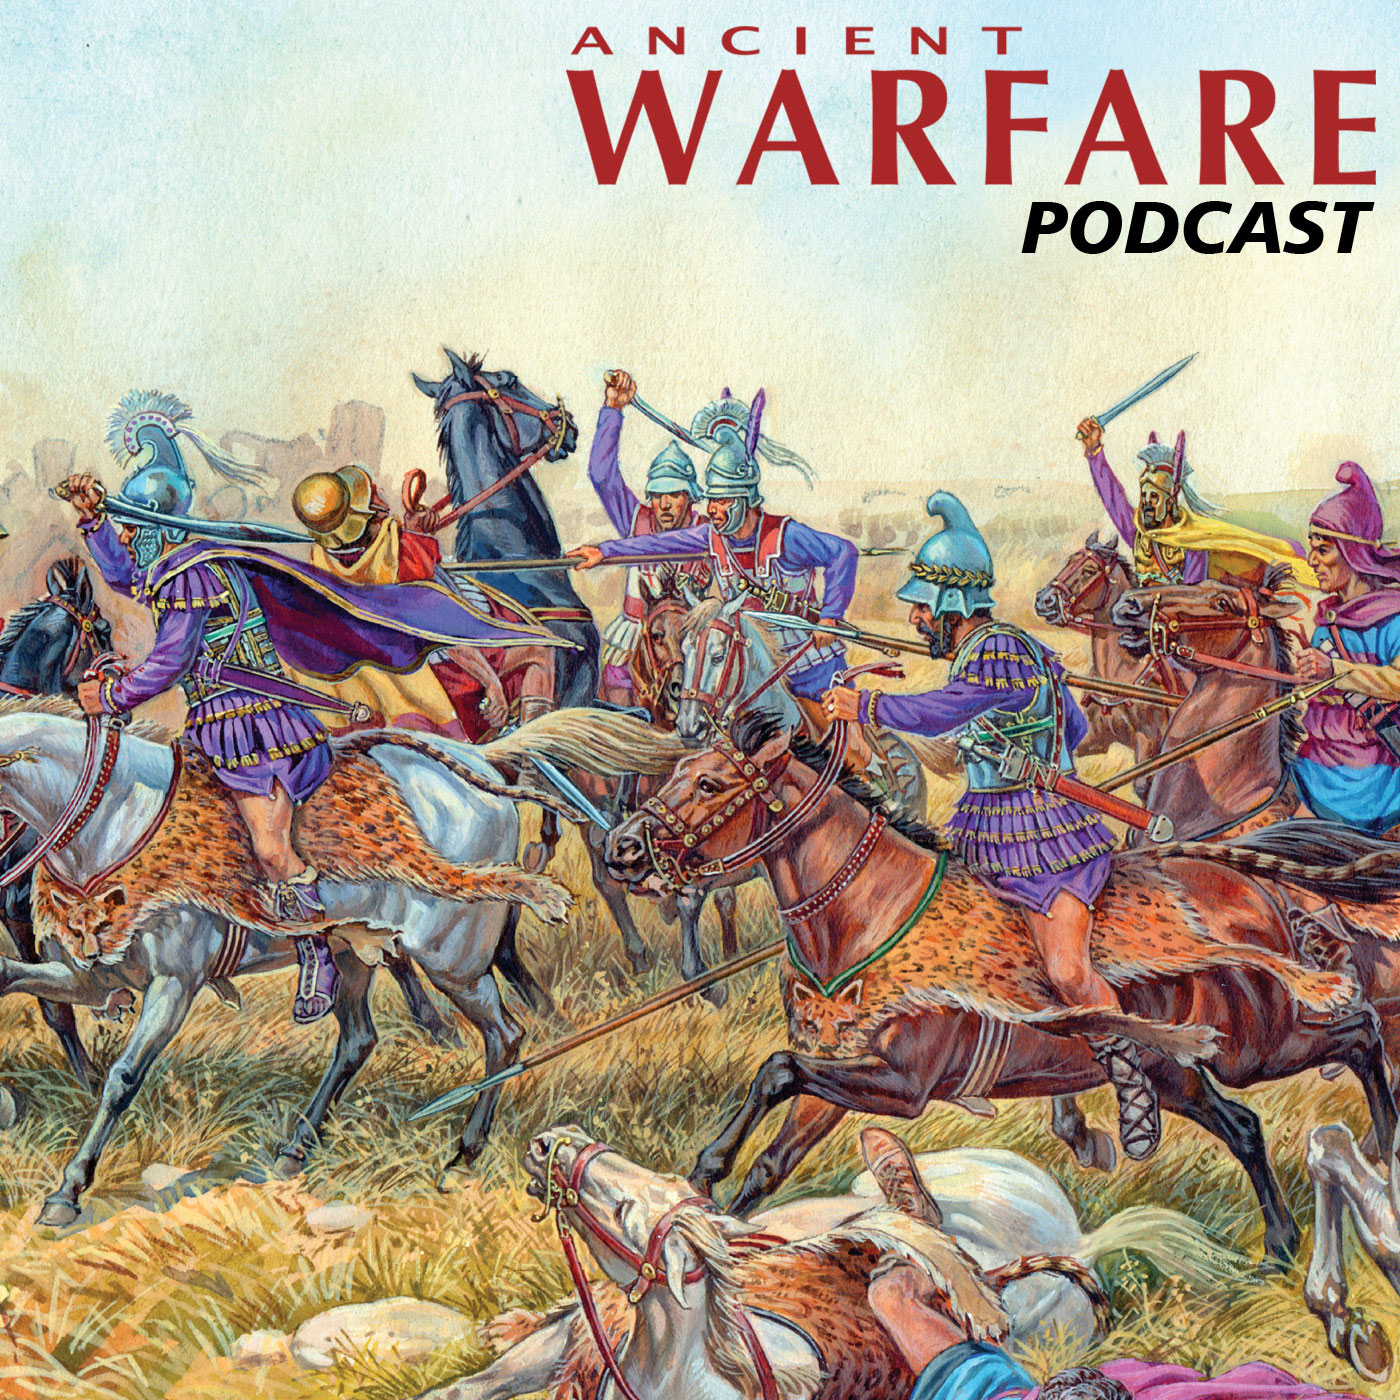 Classical heroes: The warrior in history and legend